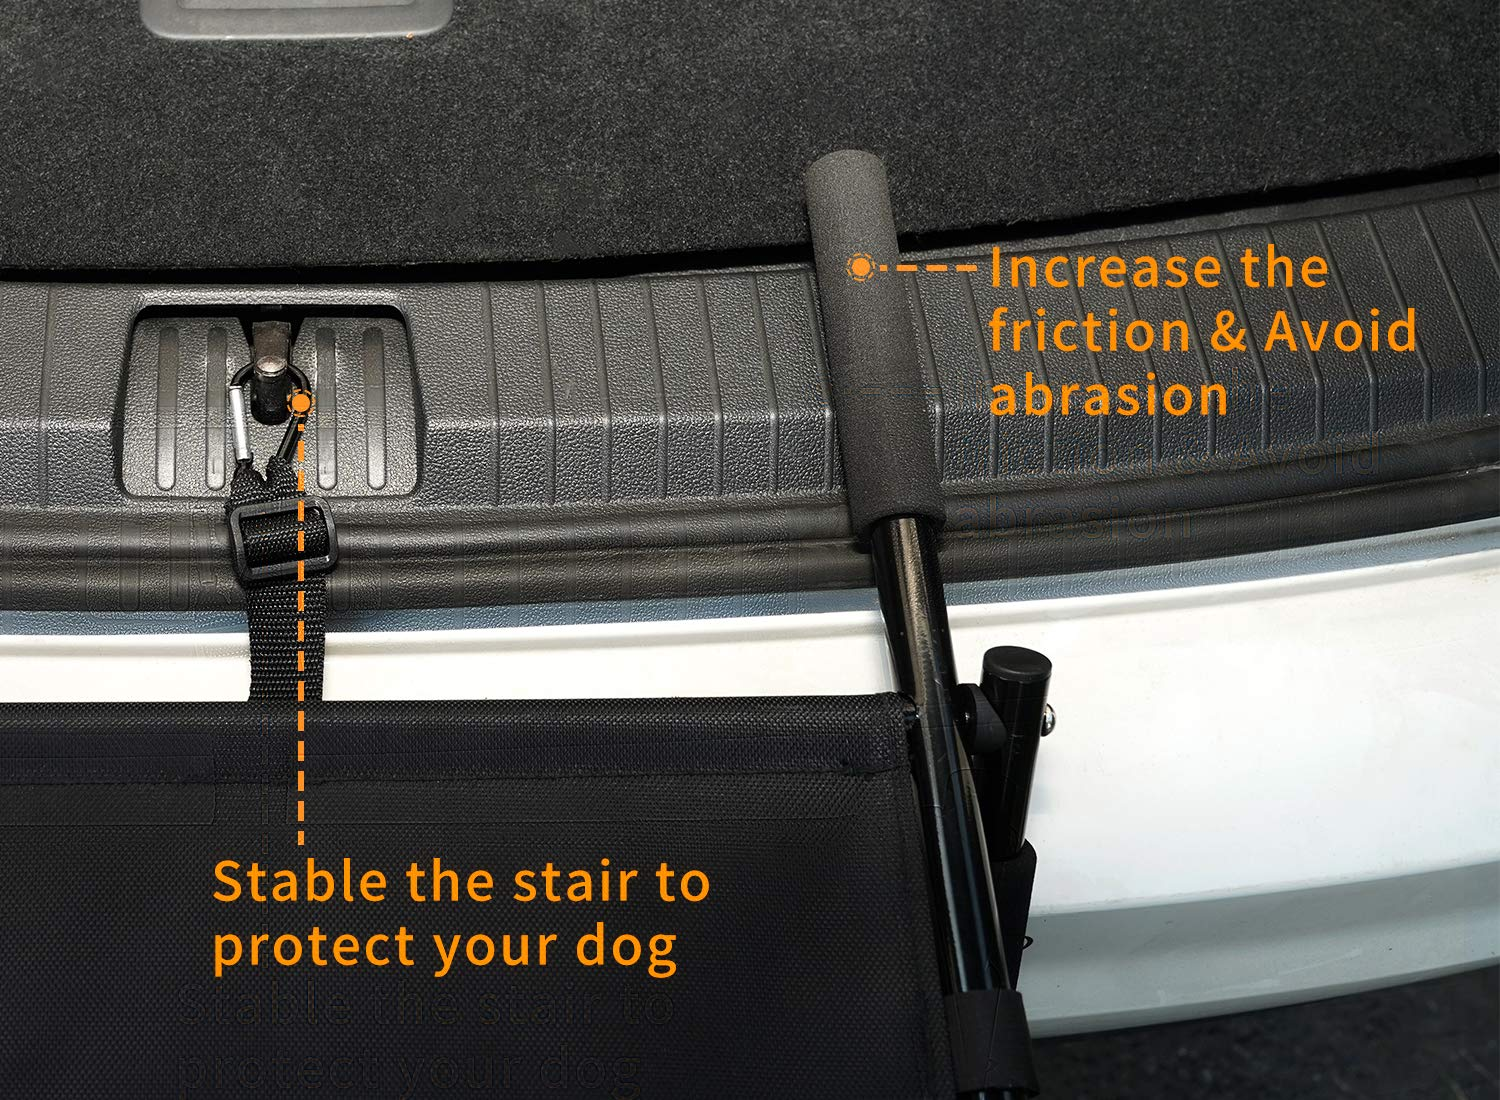 Dog Car Step Stairs Foldable SUKI&SAMI Metal Frame Folding Dog Ramp for Car,Lightweight Portable Large Dog Ladder,for Dogs and Cats,SUVs and Trucks,Couch and Bed,Protect Pets' Joint and Knee by SUKI&SAMI (Image #6)